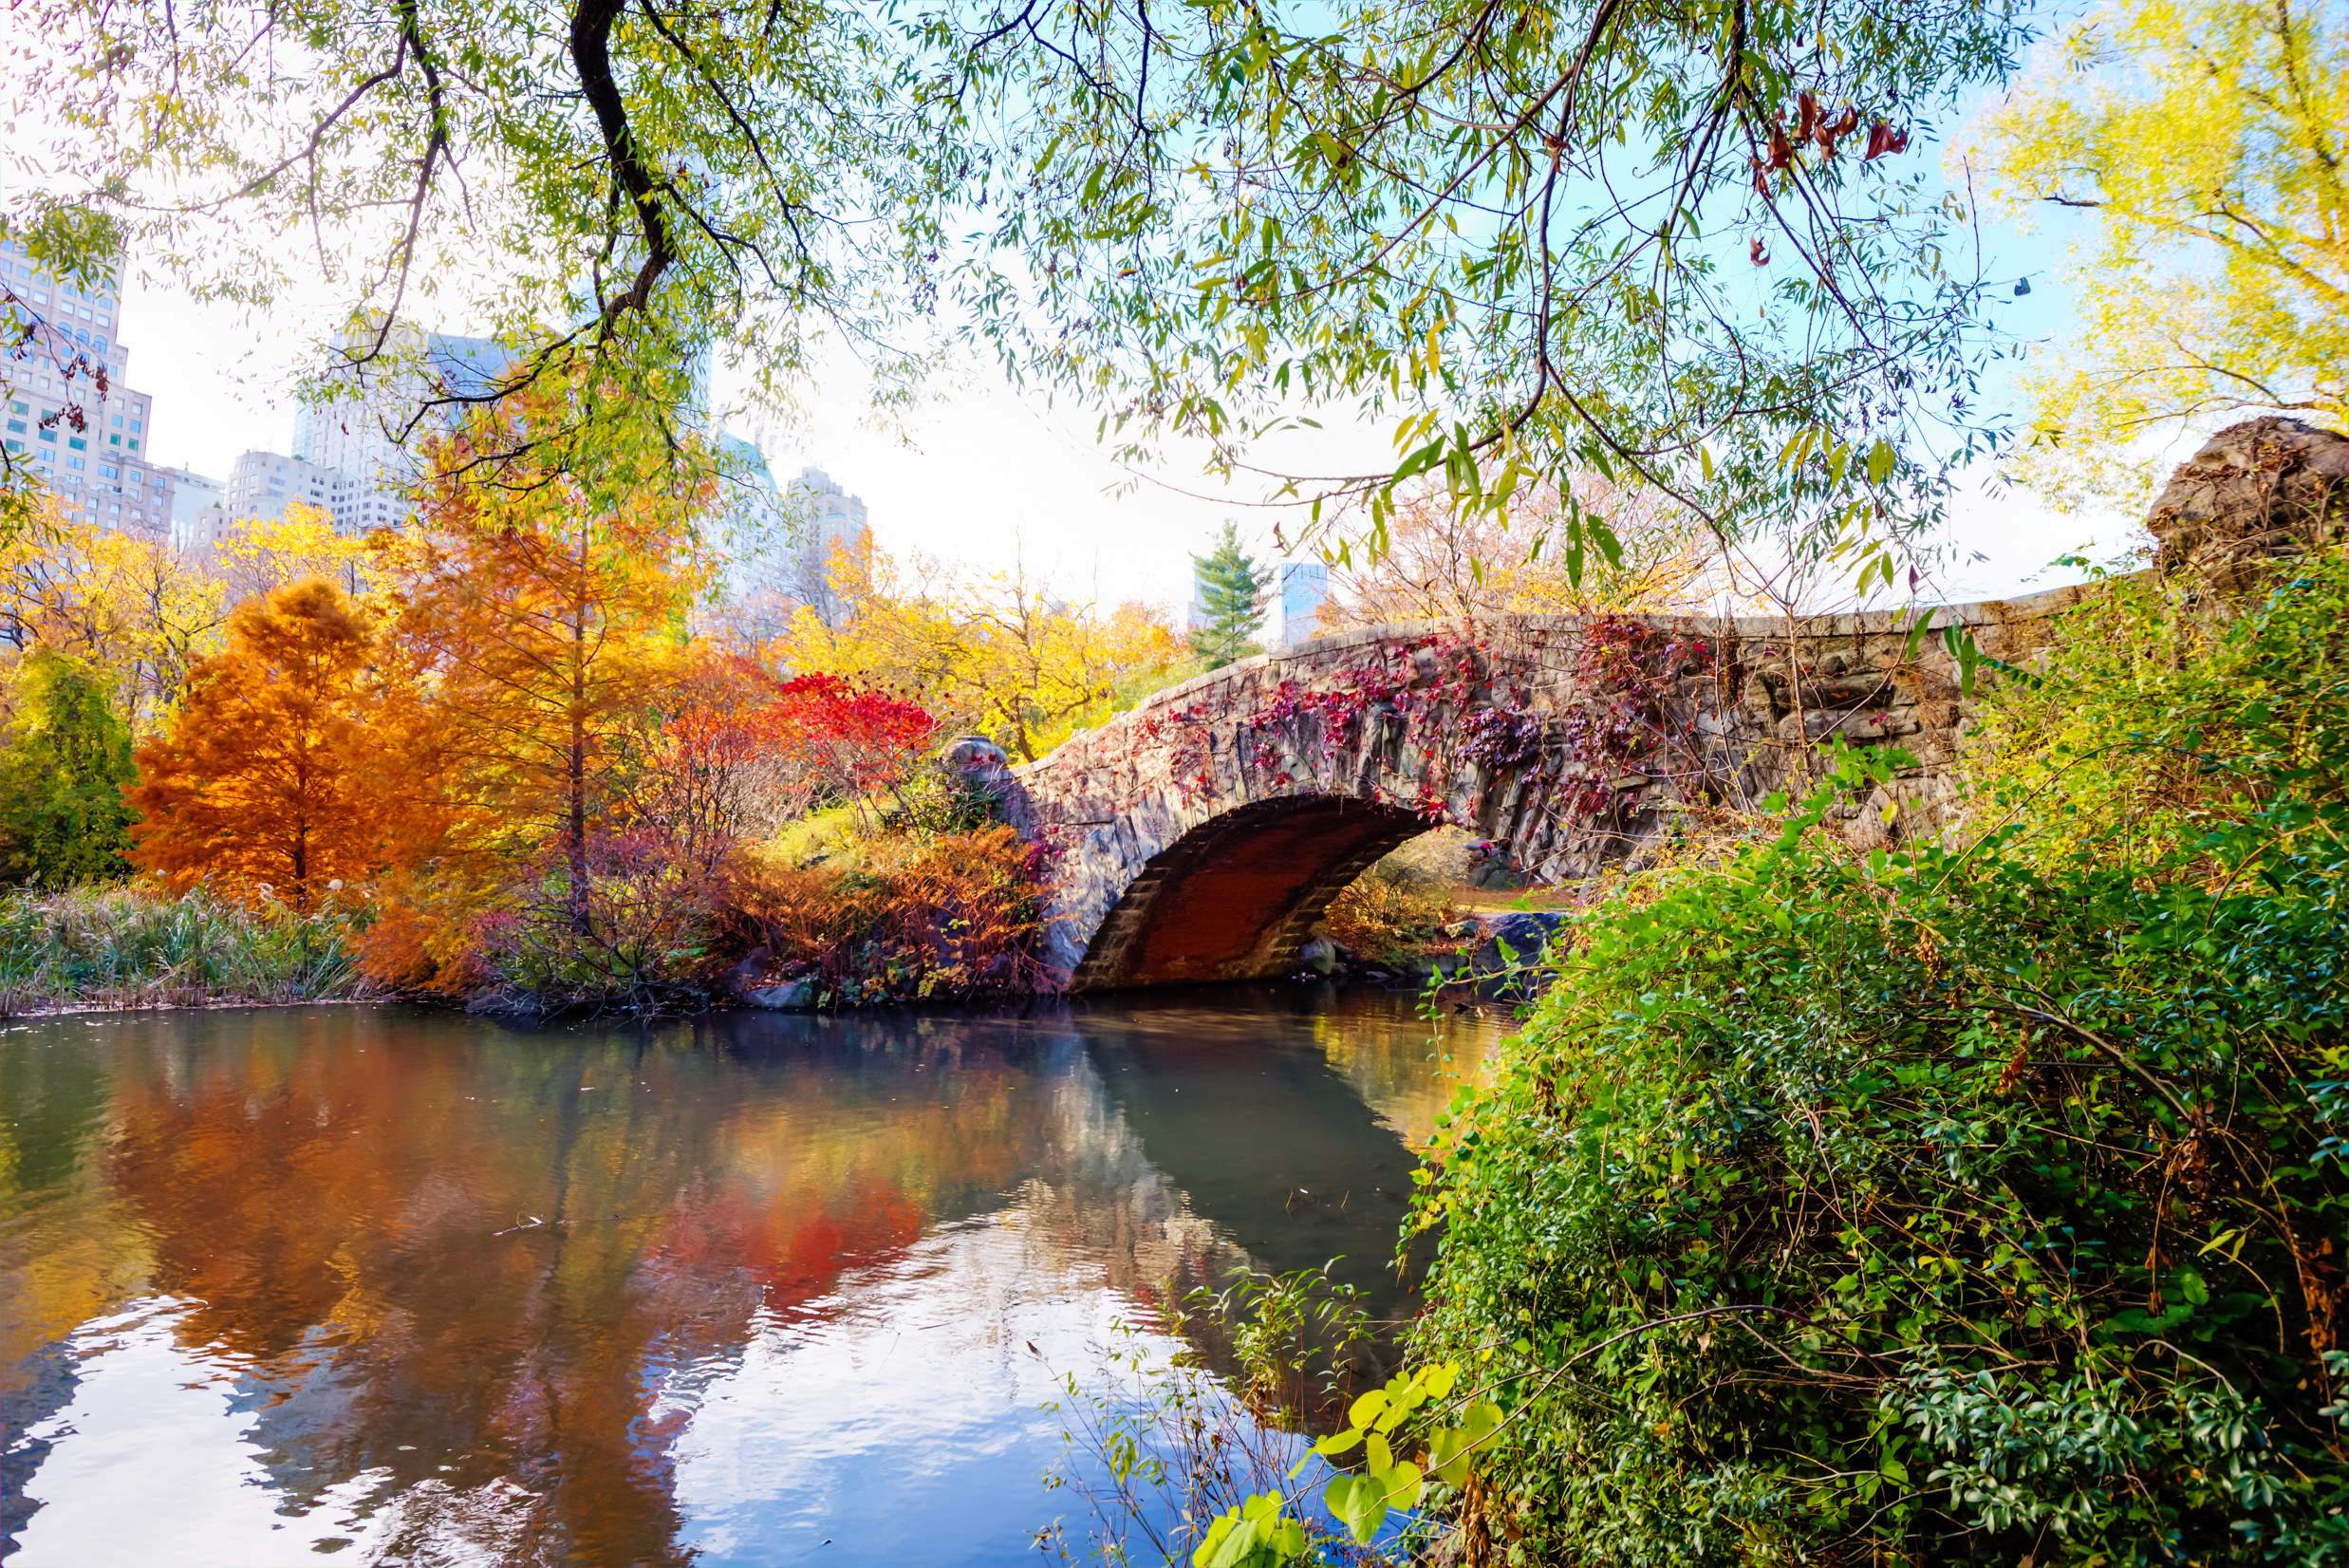 53 fantastic things to do in NYC in September